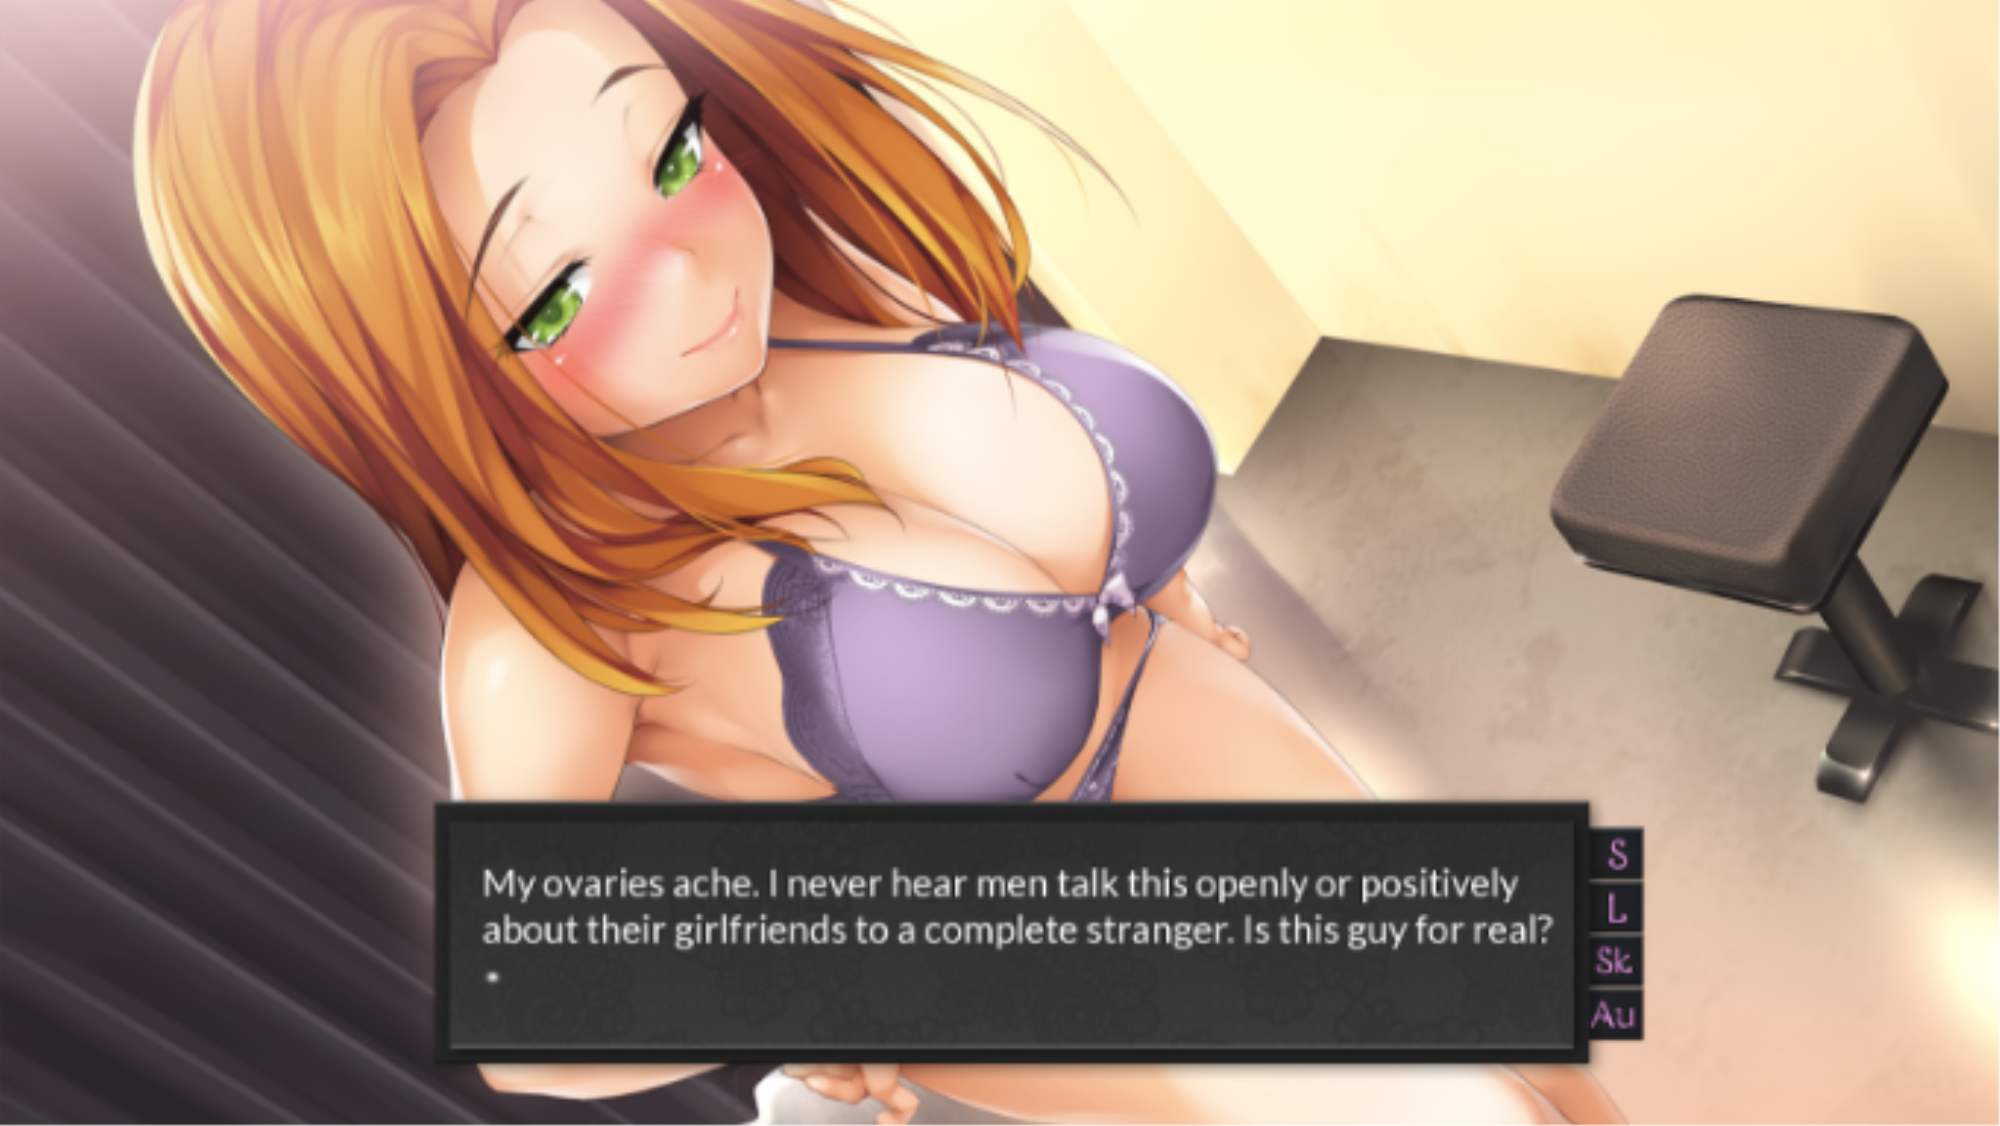 3D Anime Por the first hardcore porn game on steam is not fucking around